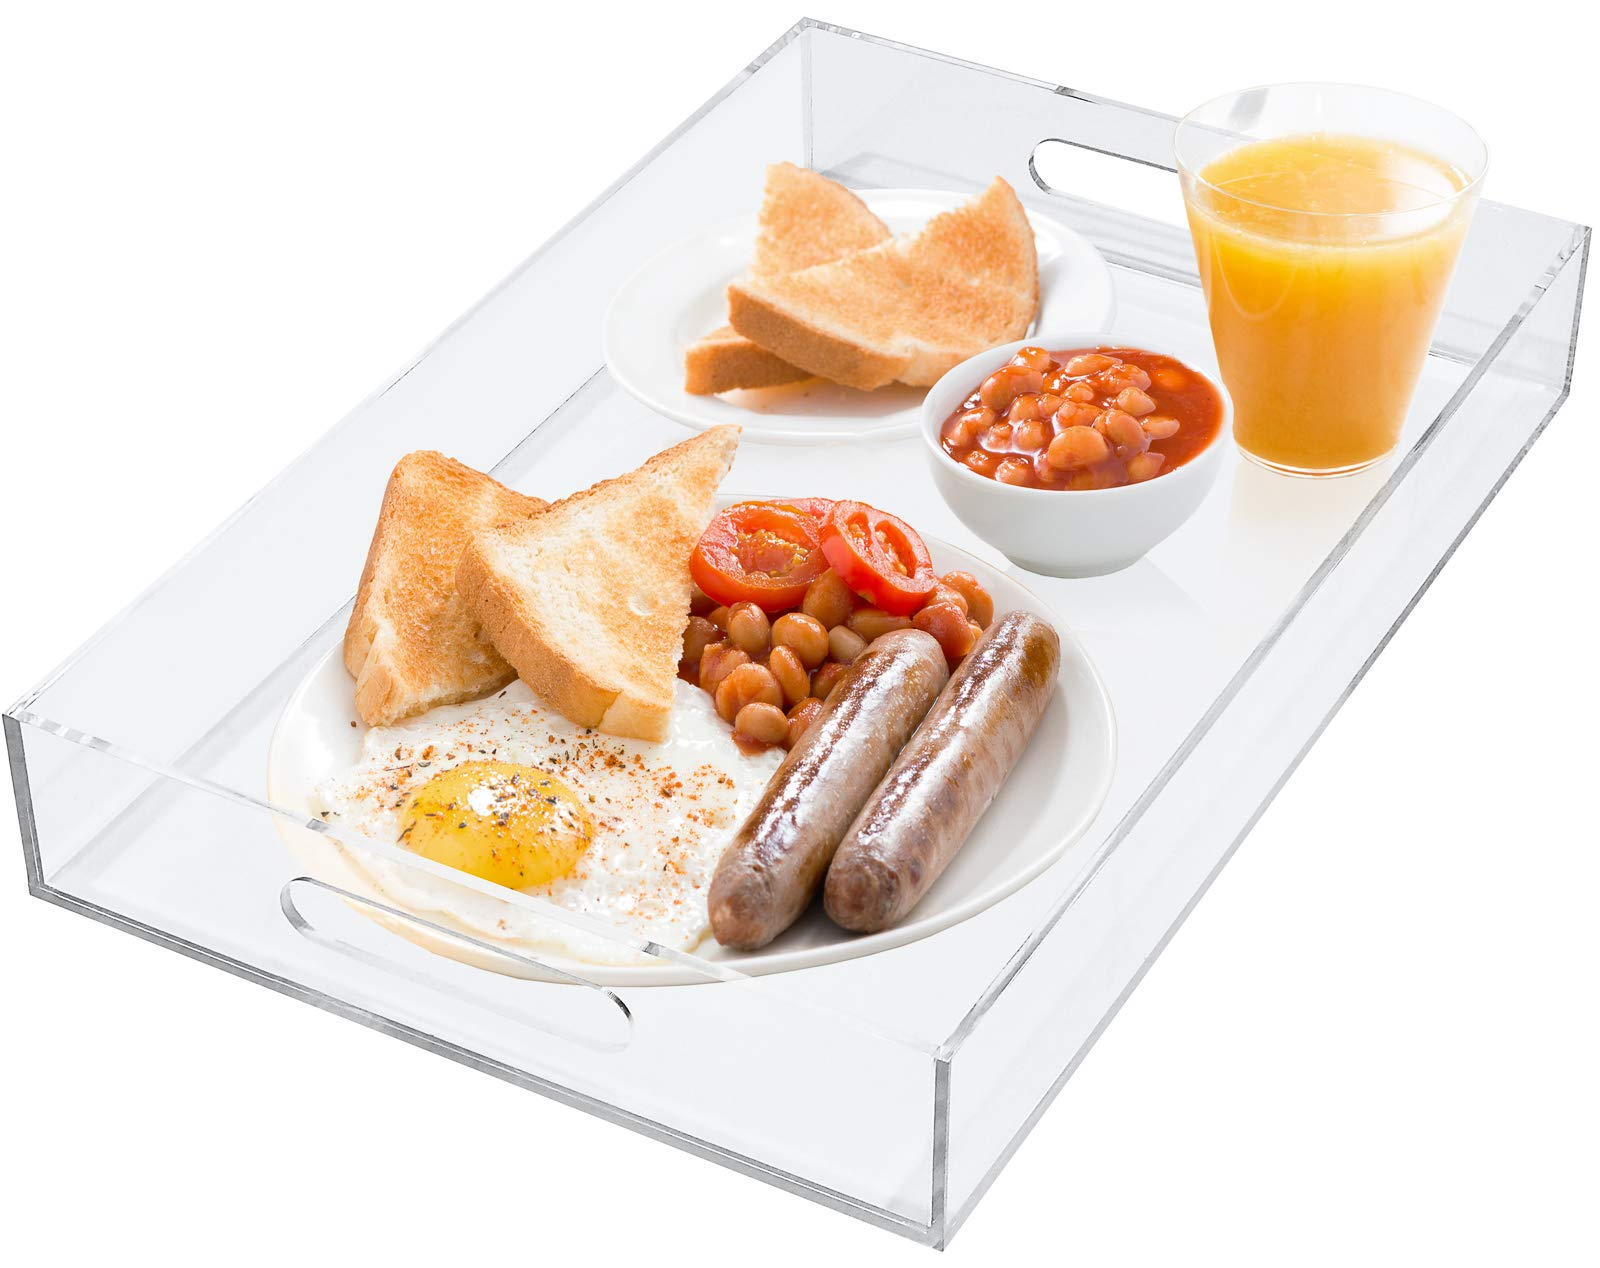 Estilo Premium Acrylic Serving Tray with Handles for Breakfast, Coffee Tables, Serving Food or Decorative Display